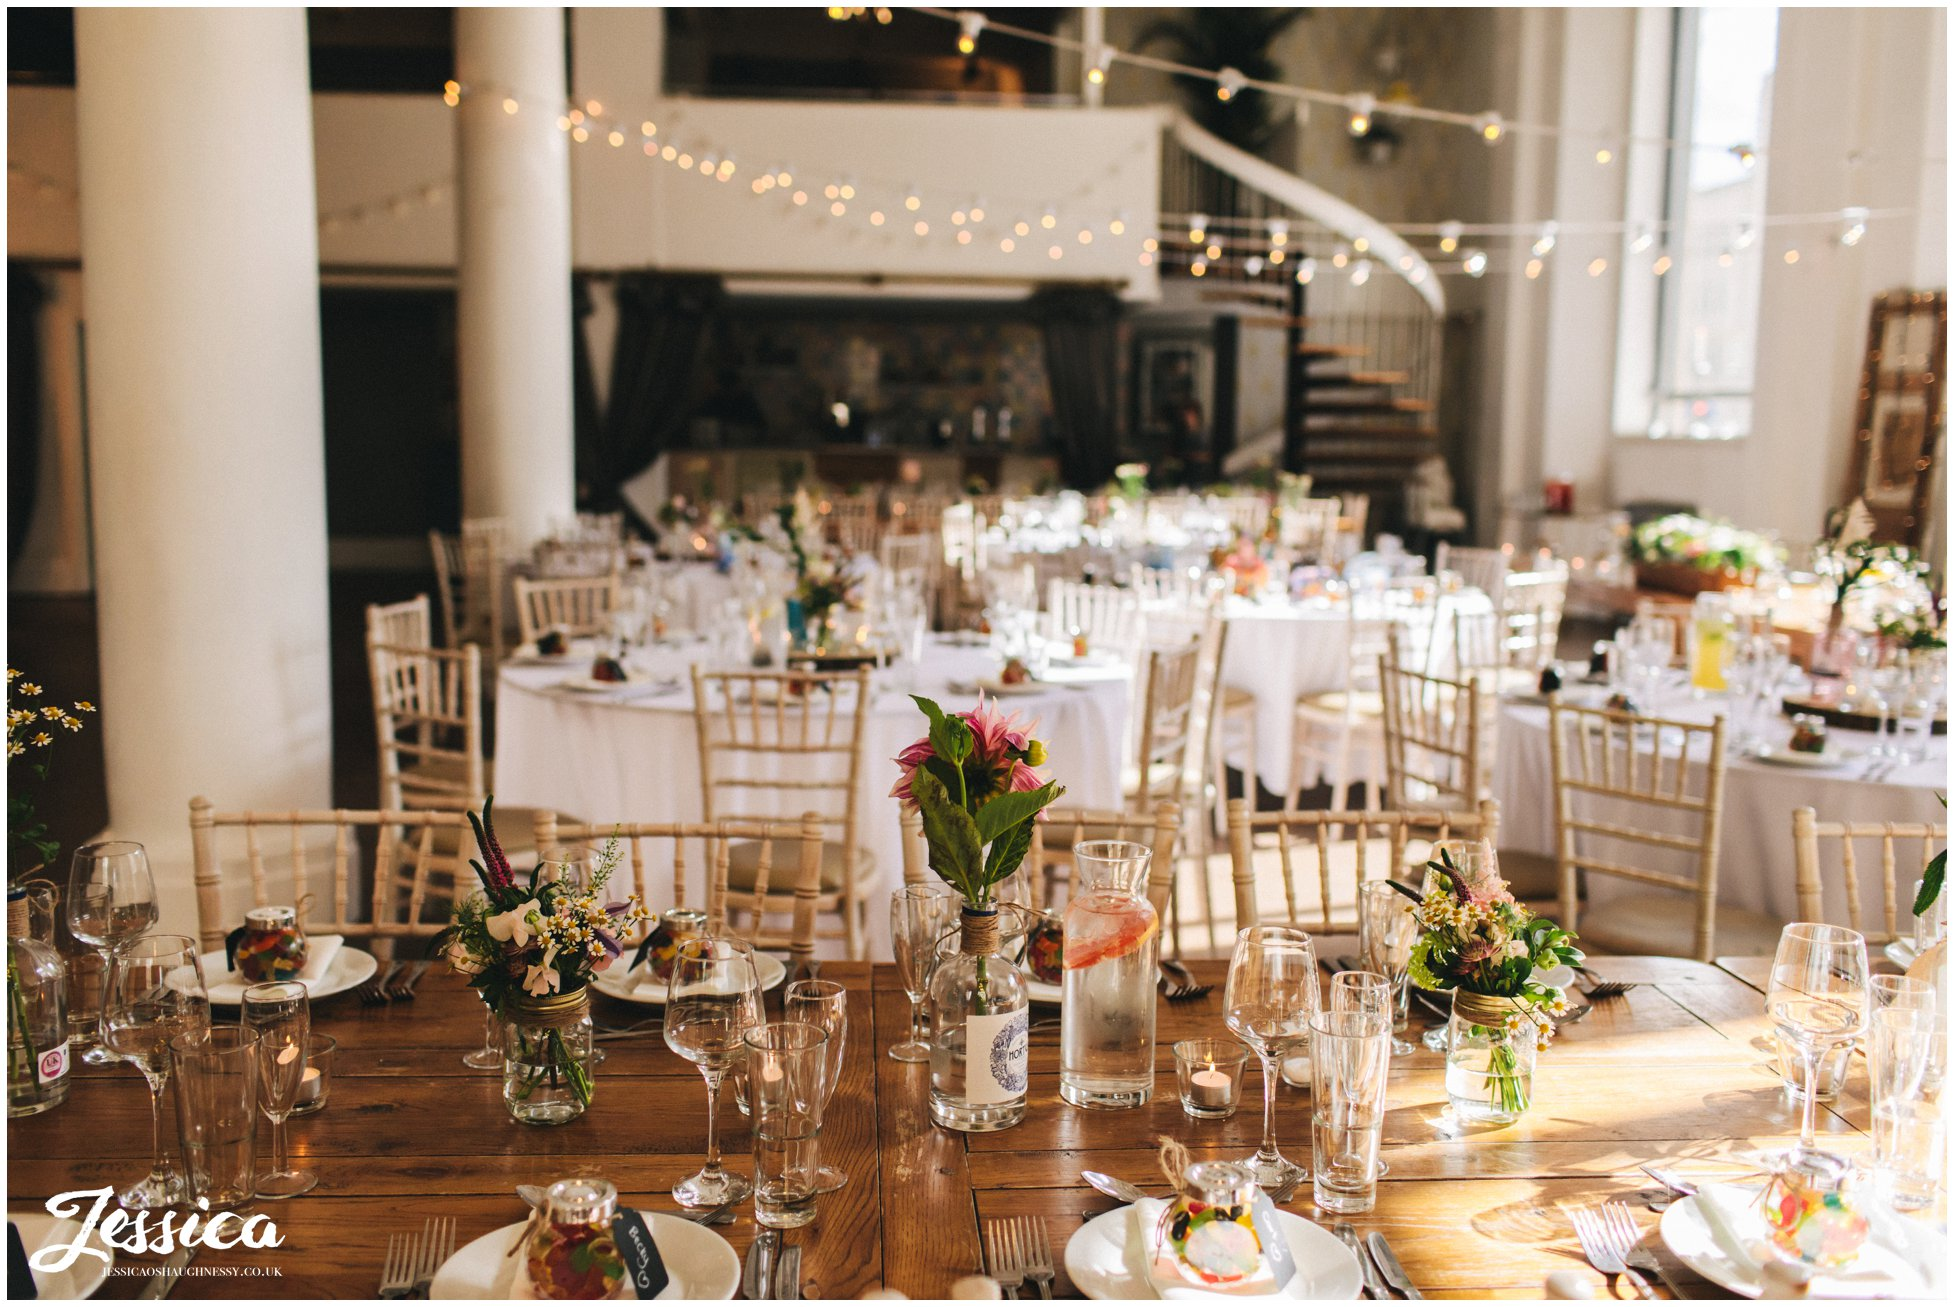 flowers in gin bottles decorate the tables at oh me oh my - a liverpool wedding venue